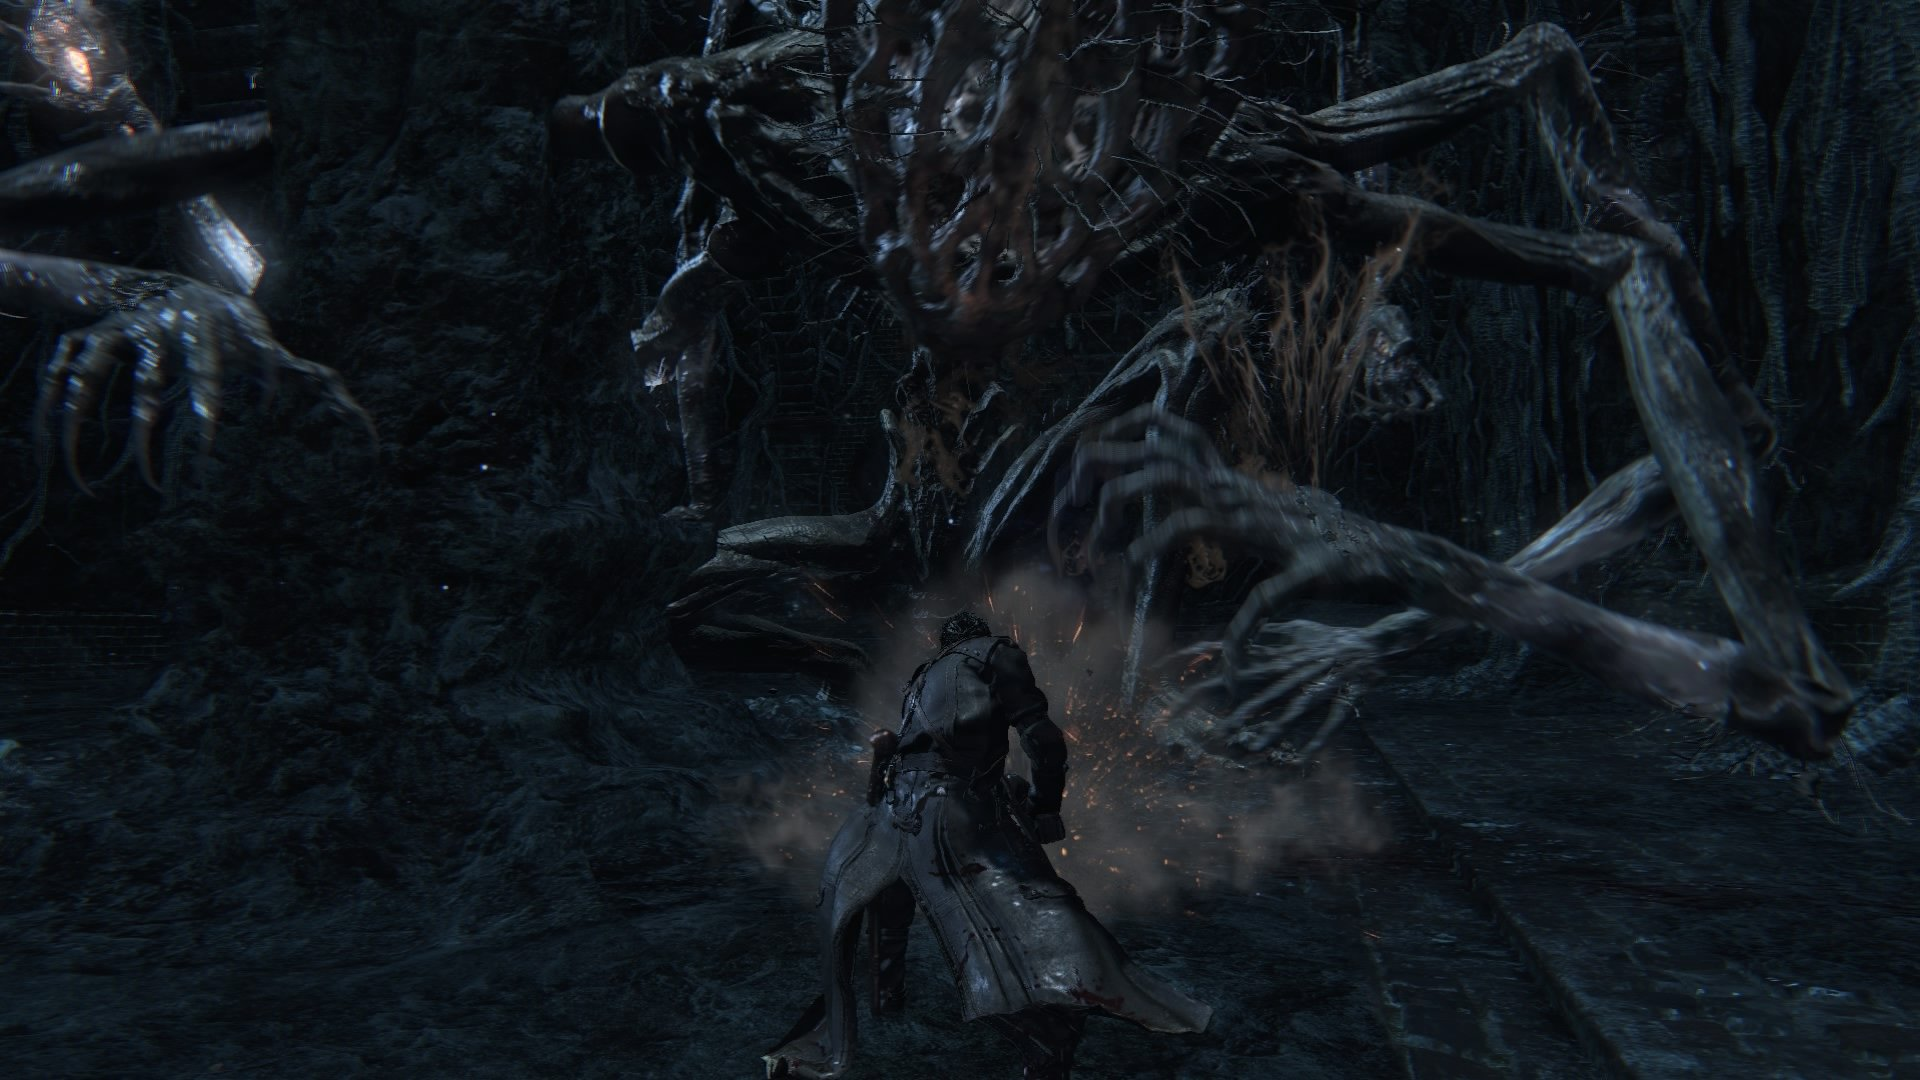 Blood, Amygdala's Arm, Isz